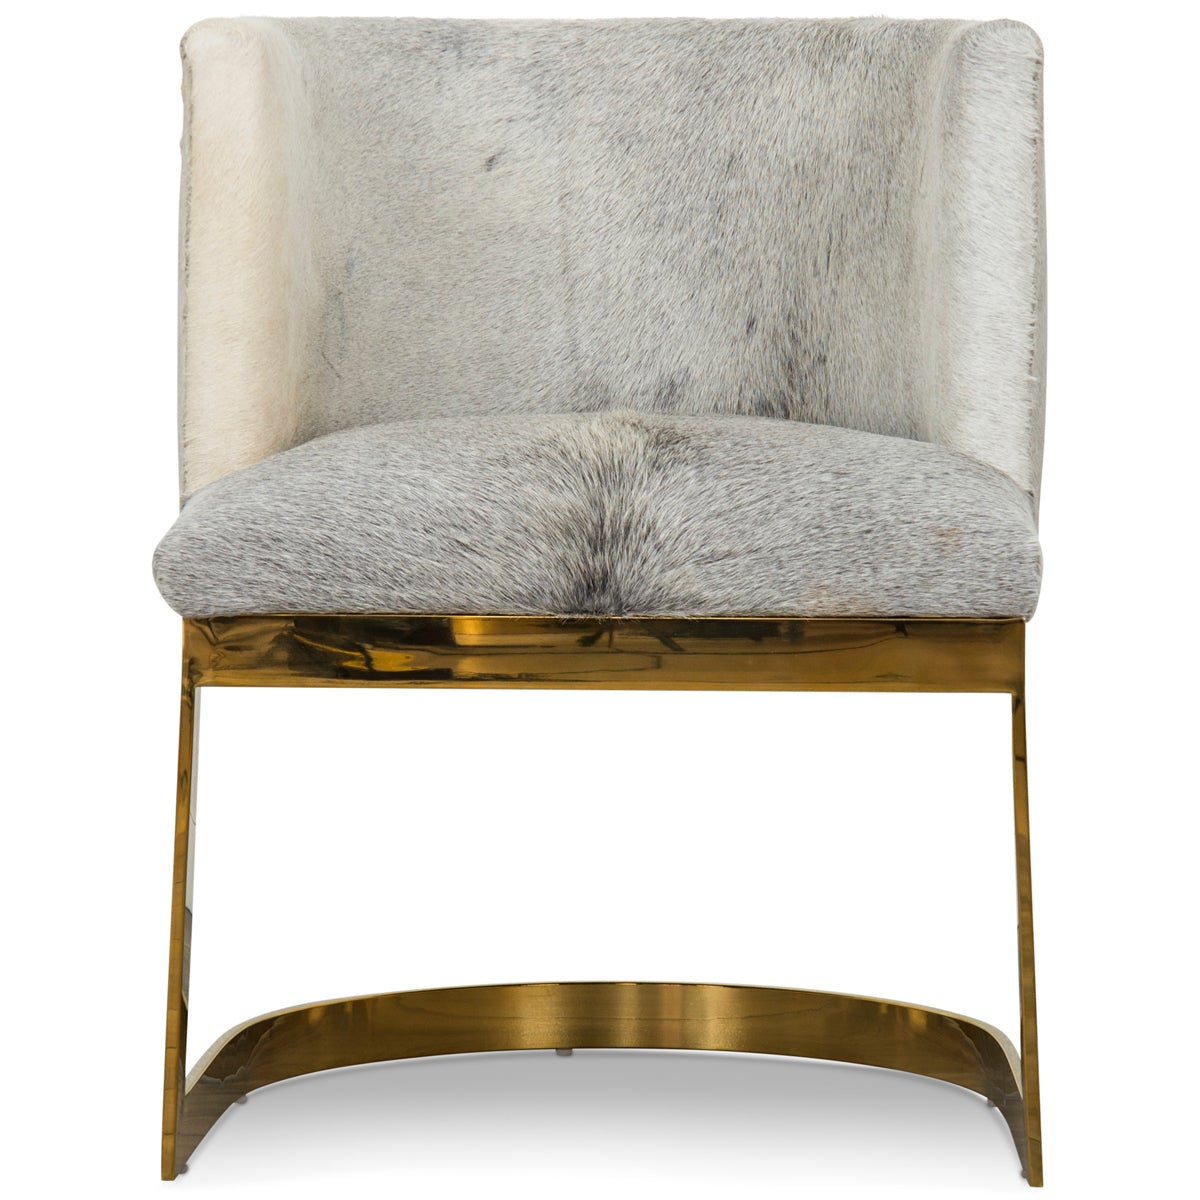 Ibiza Dining Chair Grey Champagne Cowhide Chair Modshop